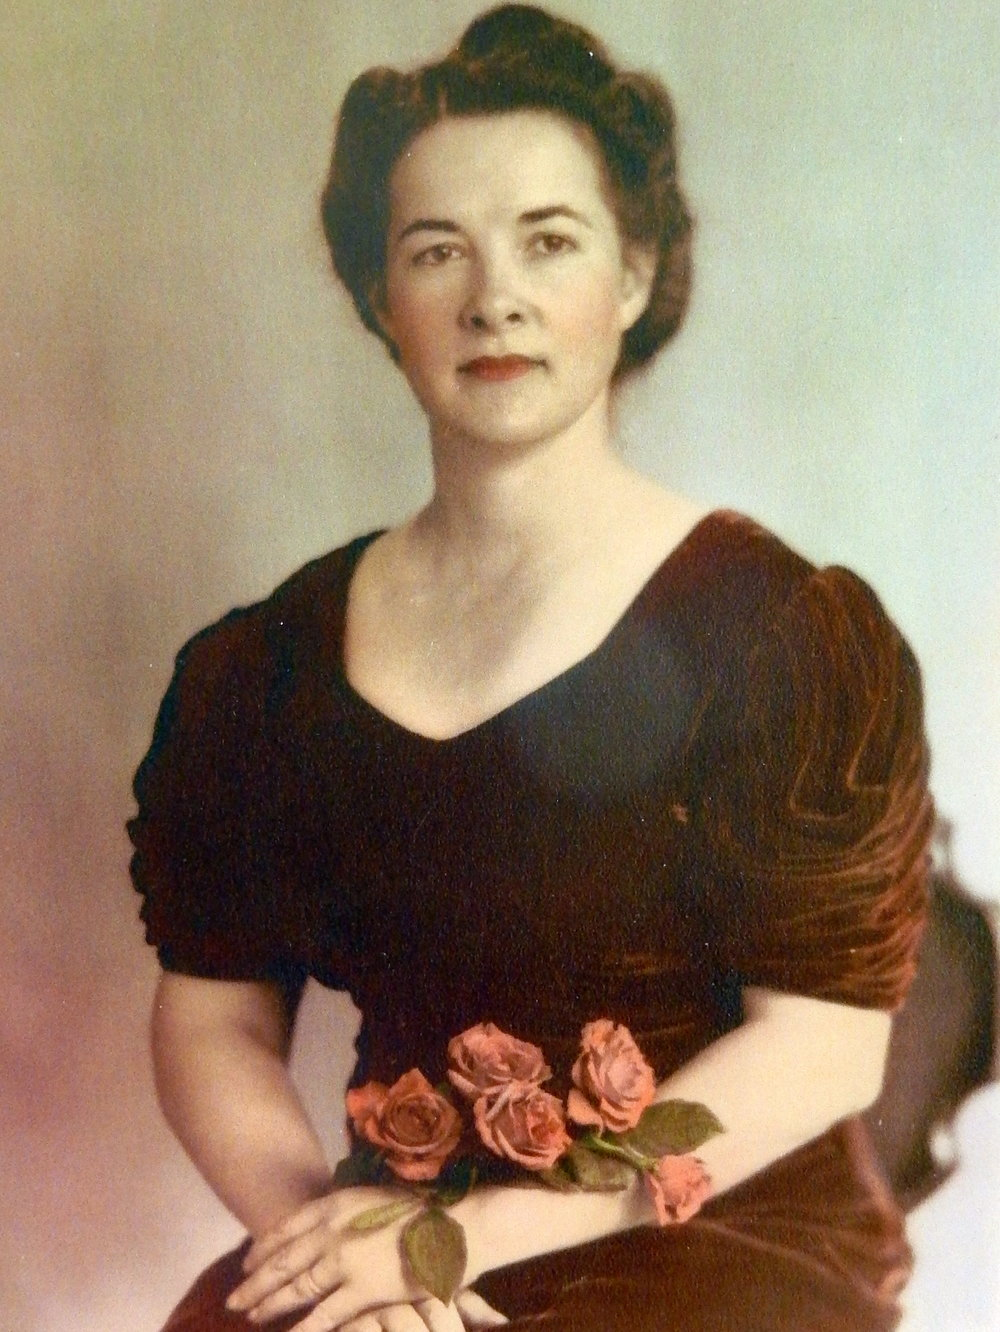 Laura Lee Wilfong in 1945